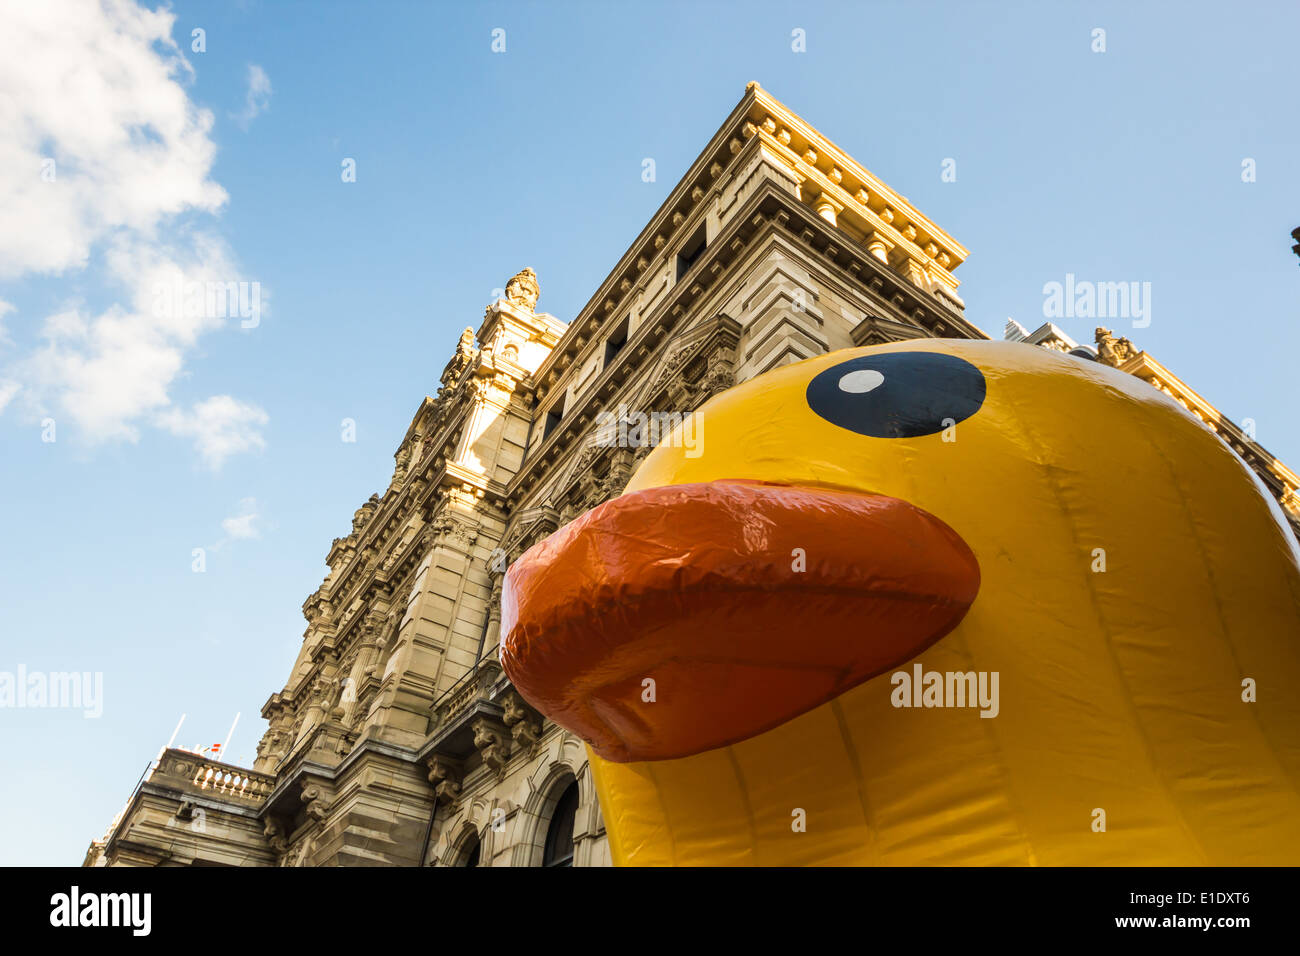 Giant Inflatable Duck Stock Photos & Giant Inflatable Duck Stock ...